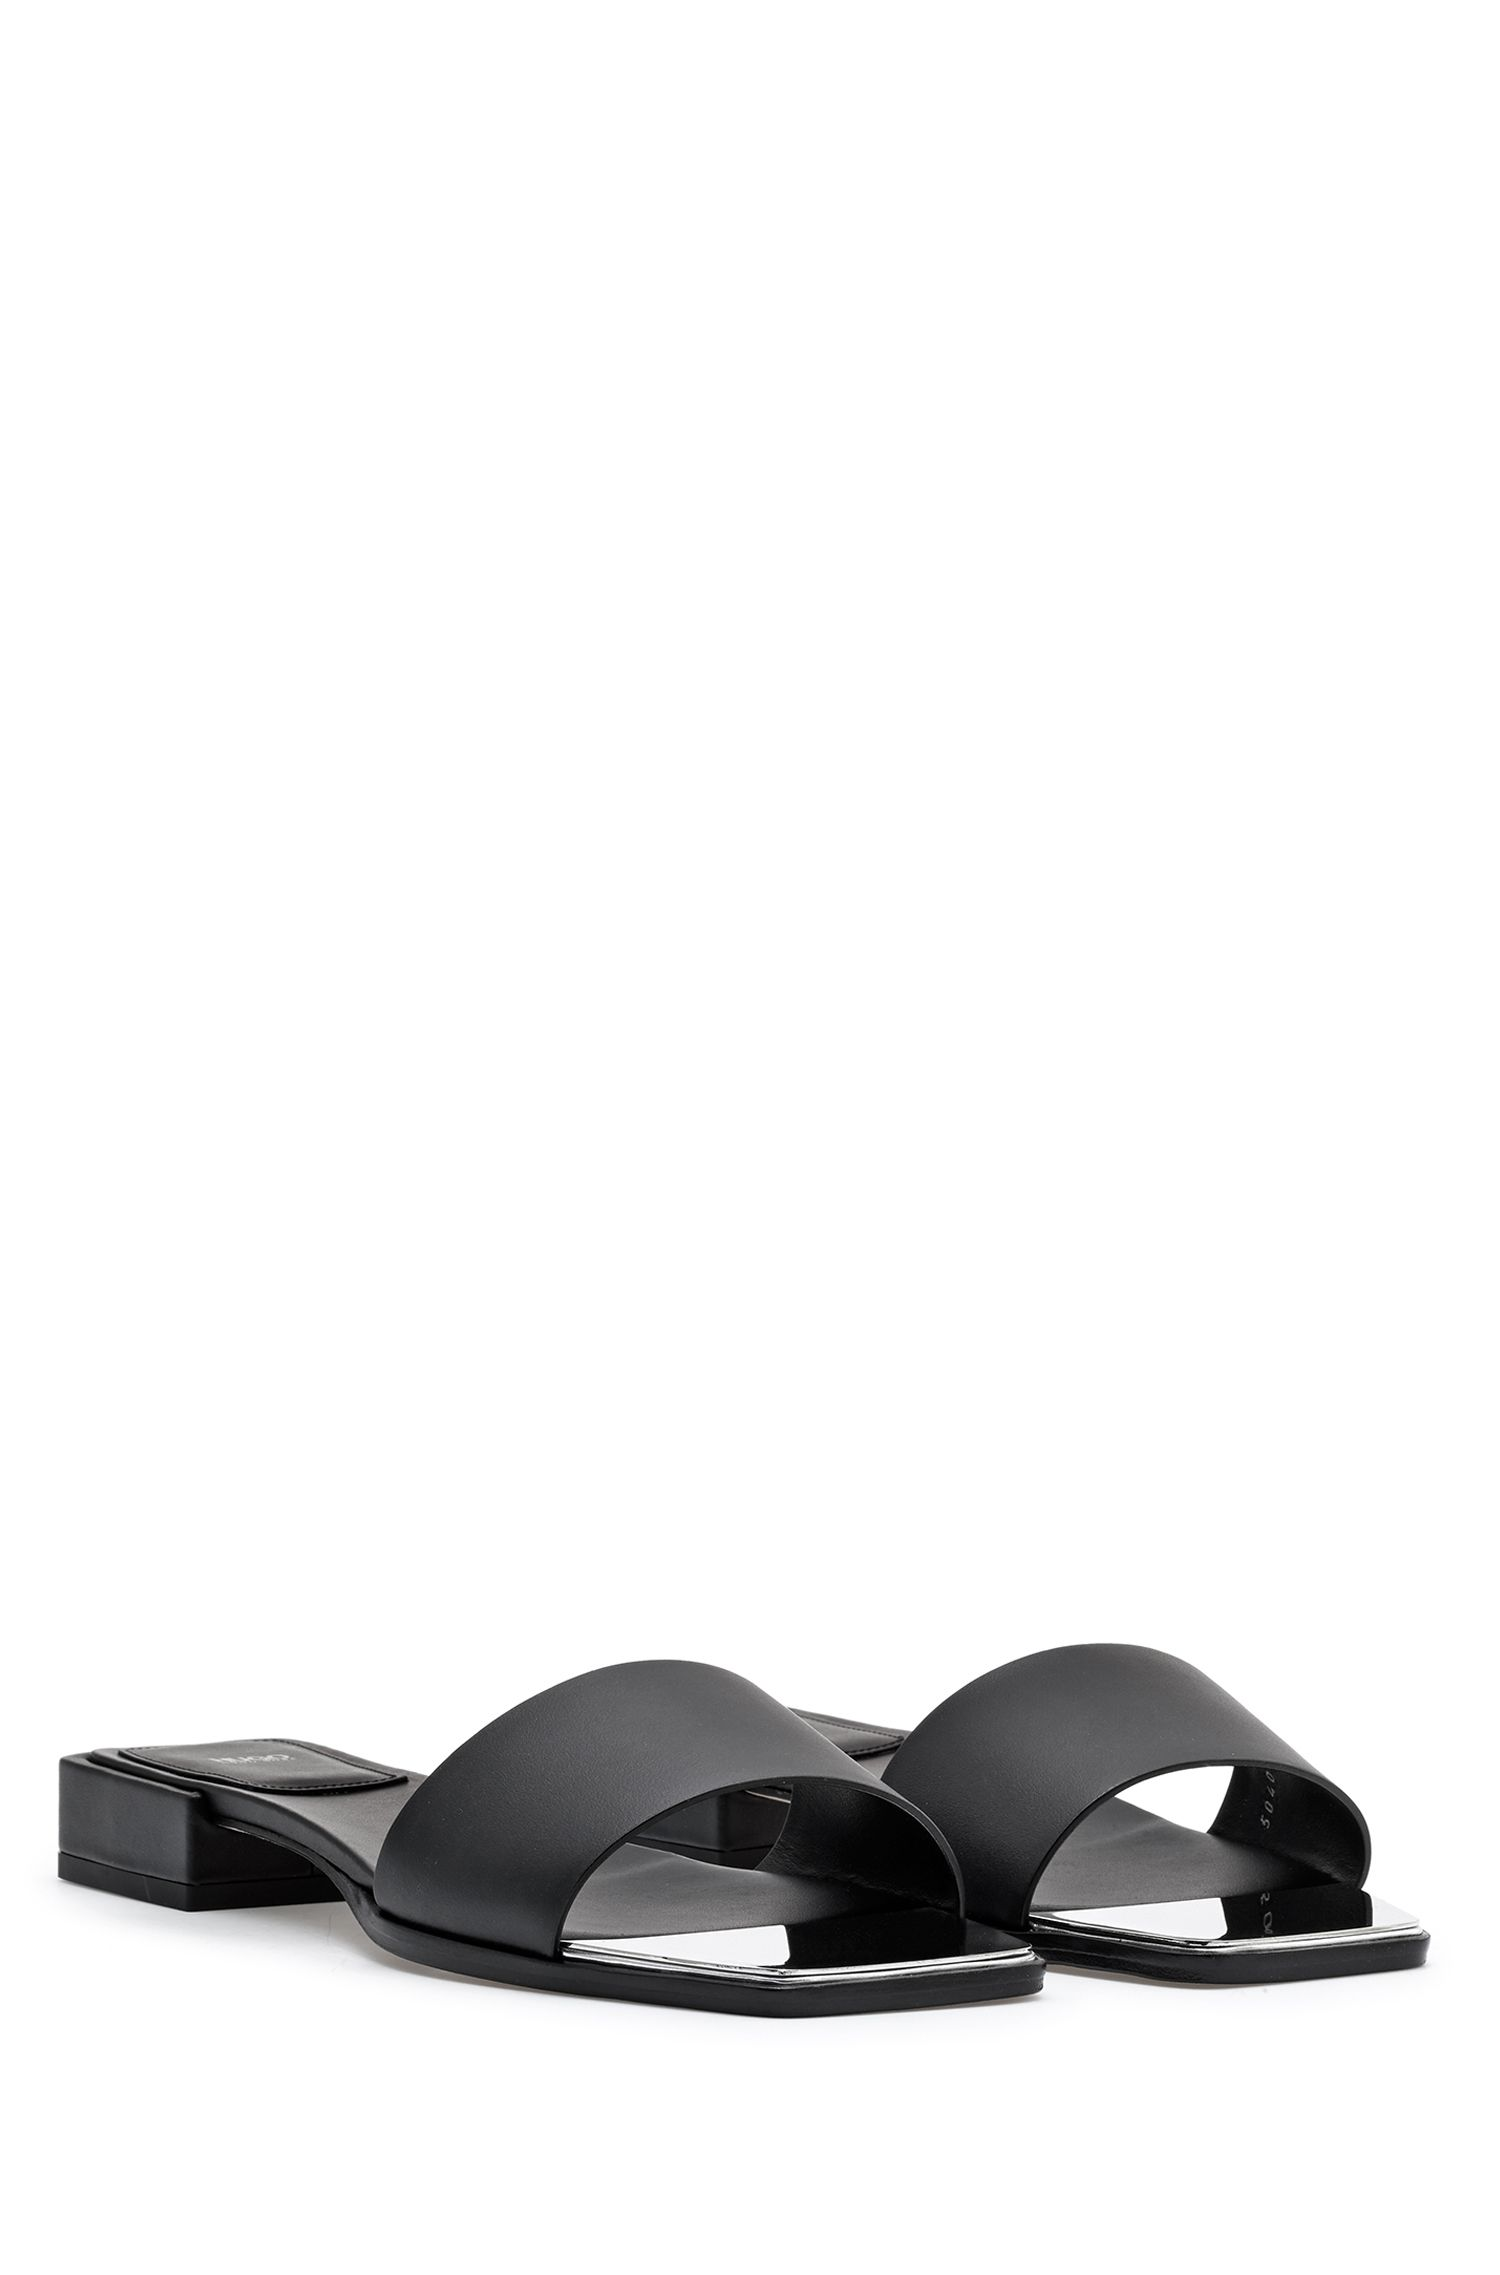 Slide sandals in Italian leather with metallic squared toe, Black